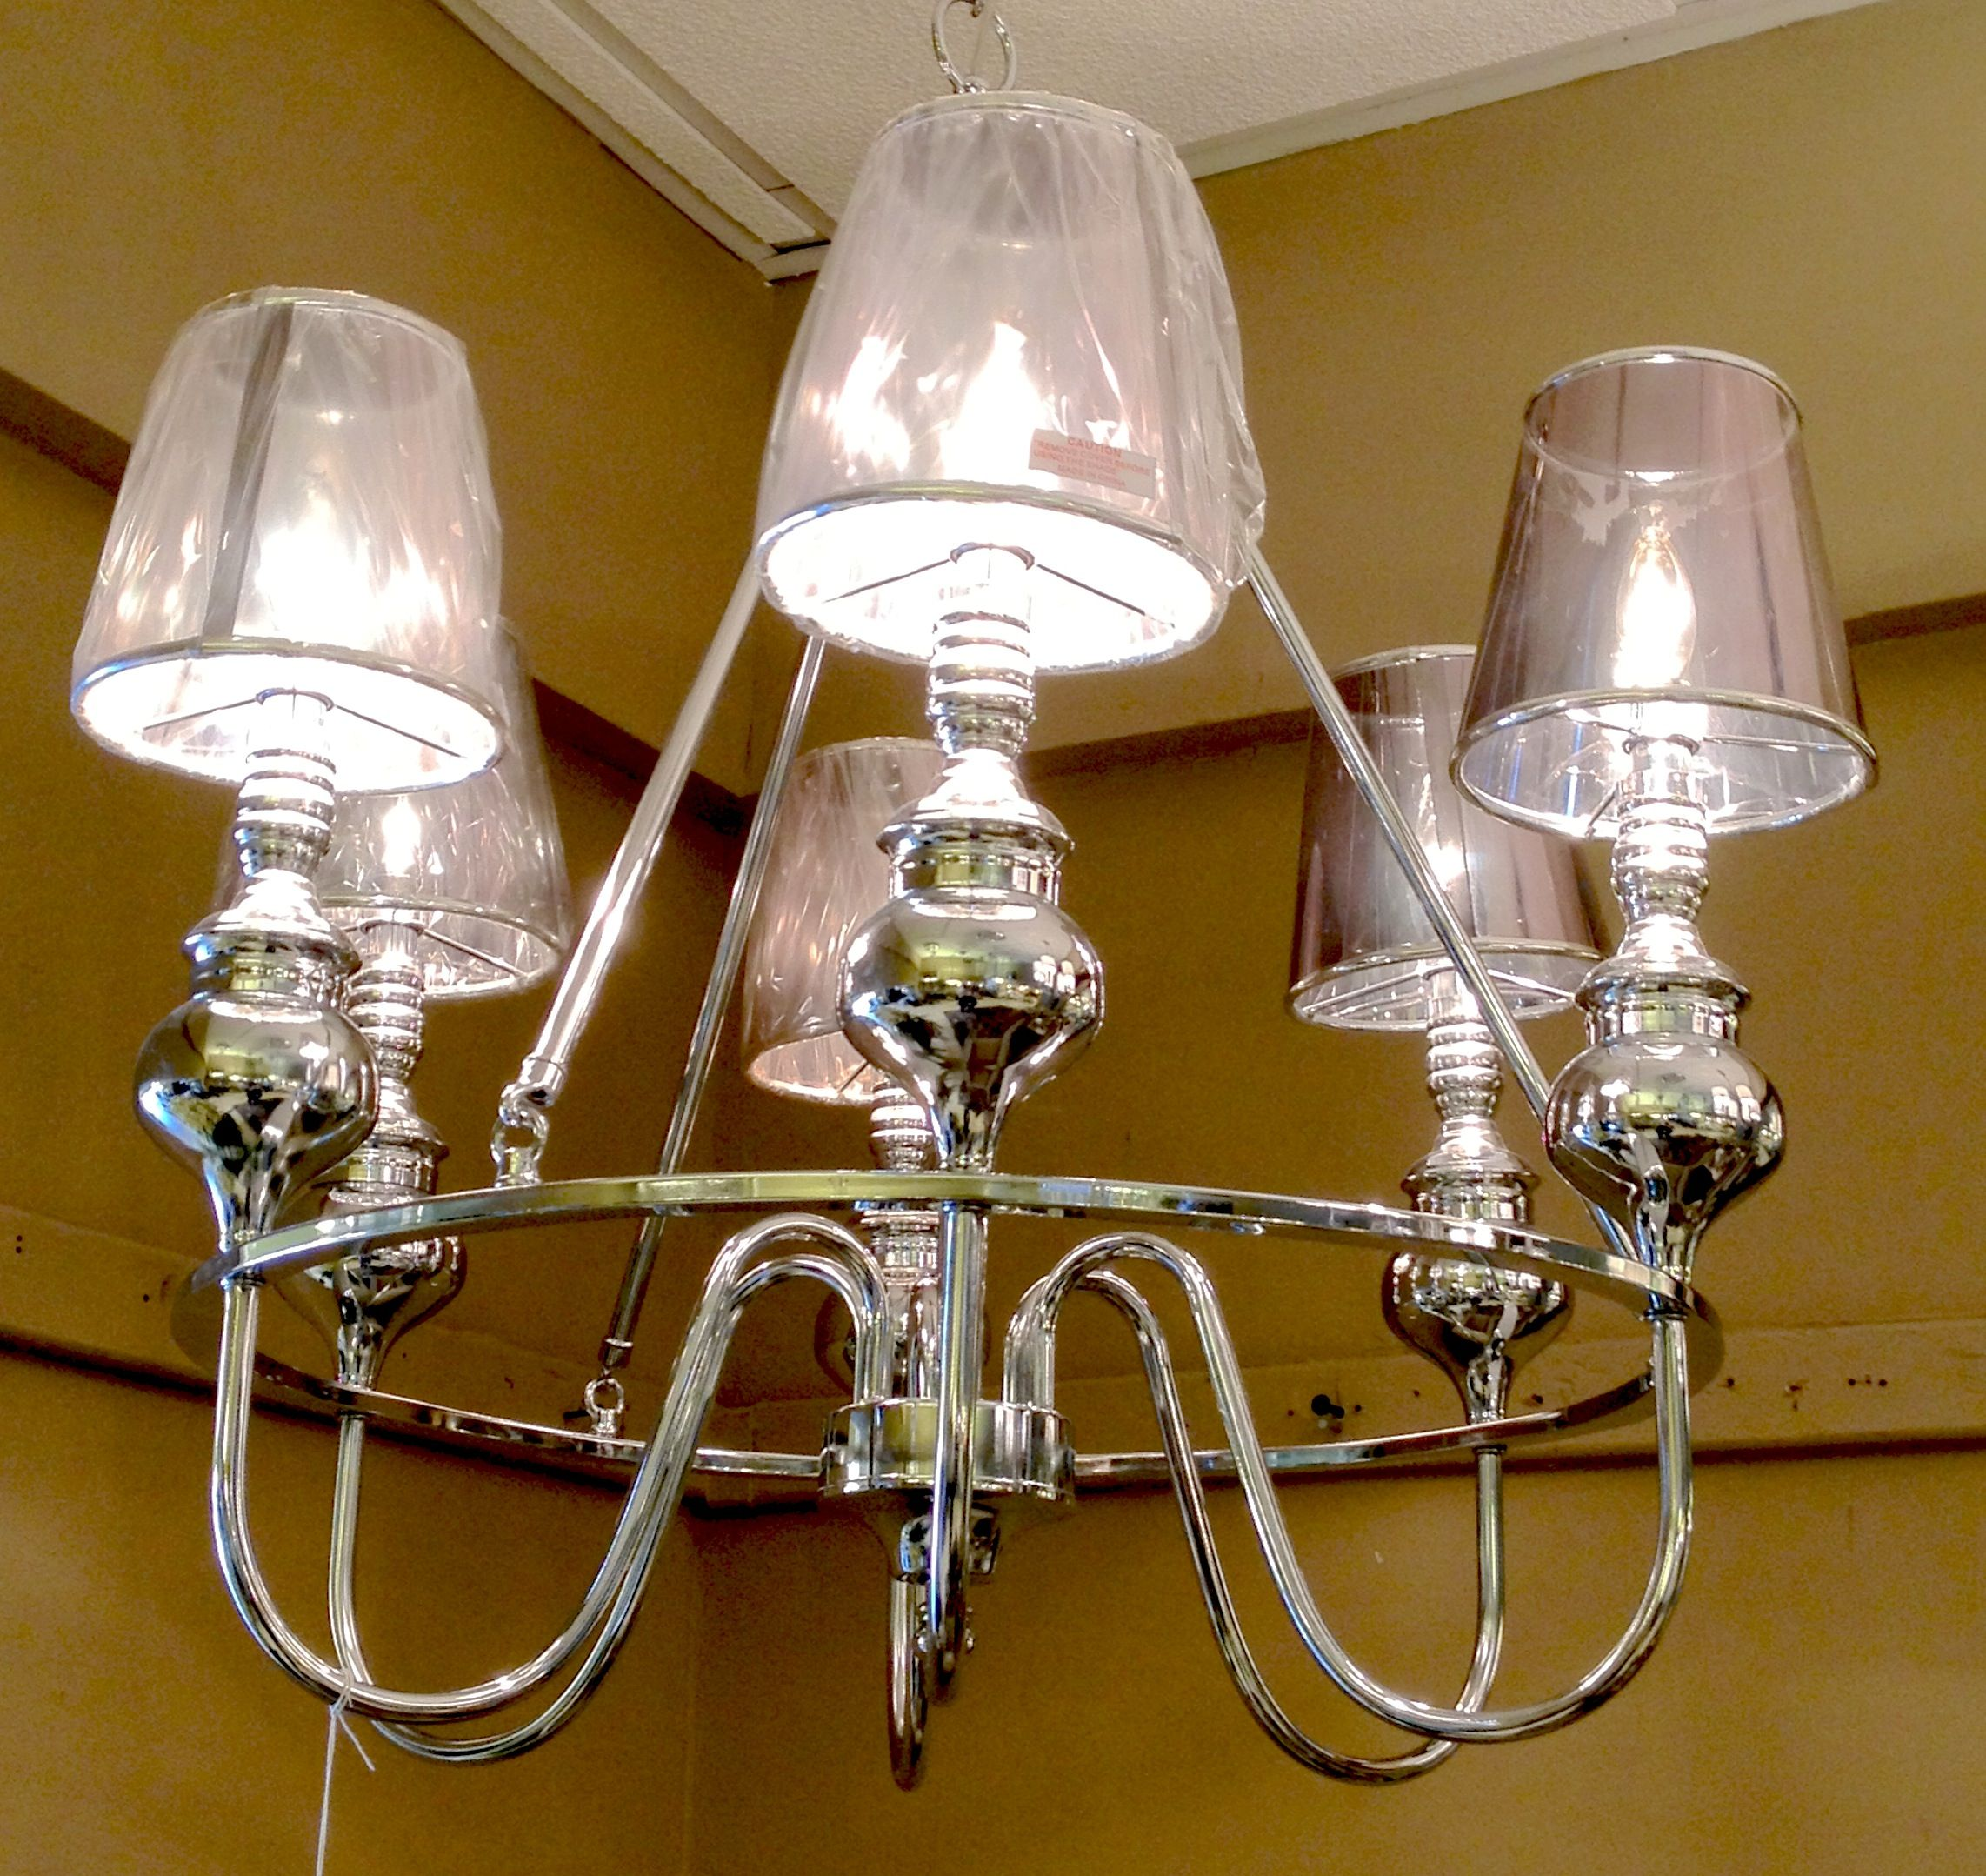 Lighting fixtures for every home and style decor tampa florida sanjuan lightsandmore com puertorico